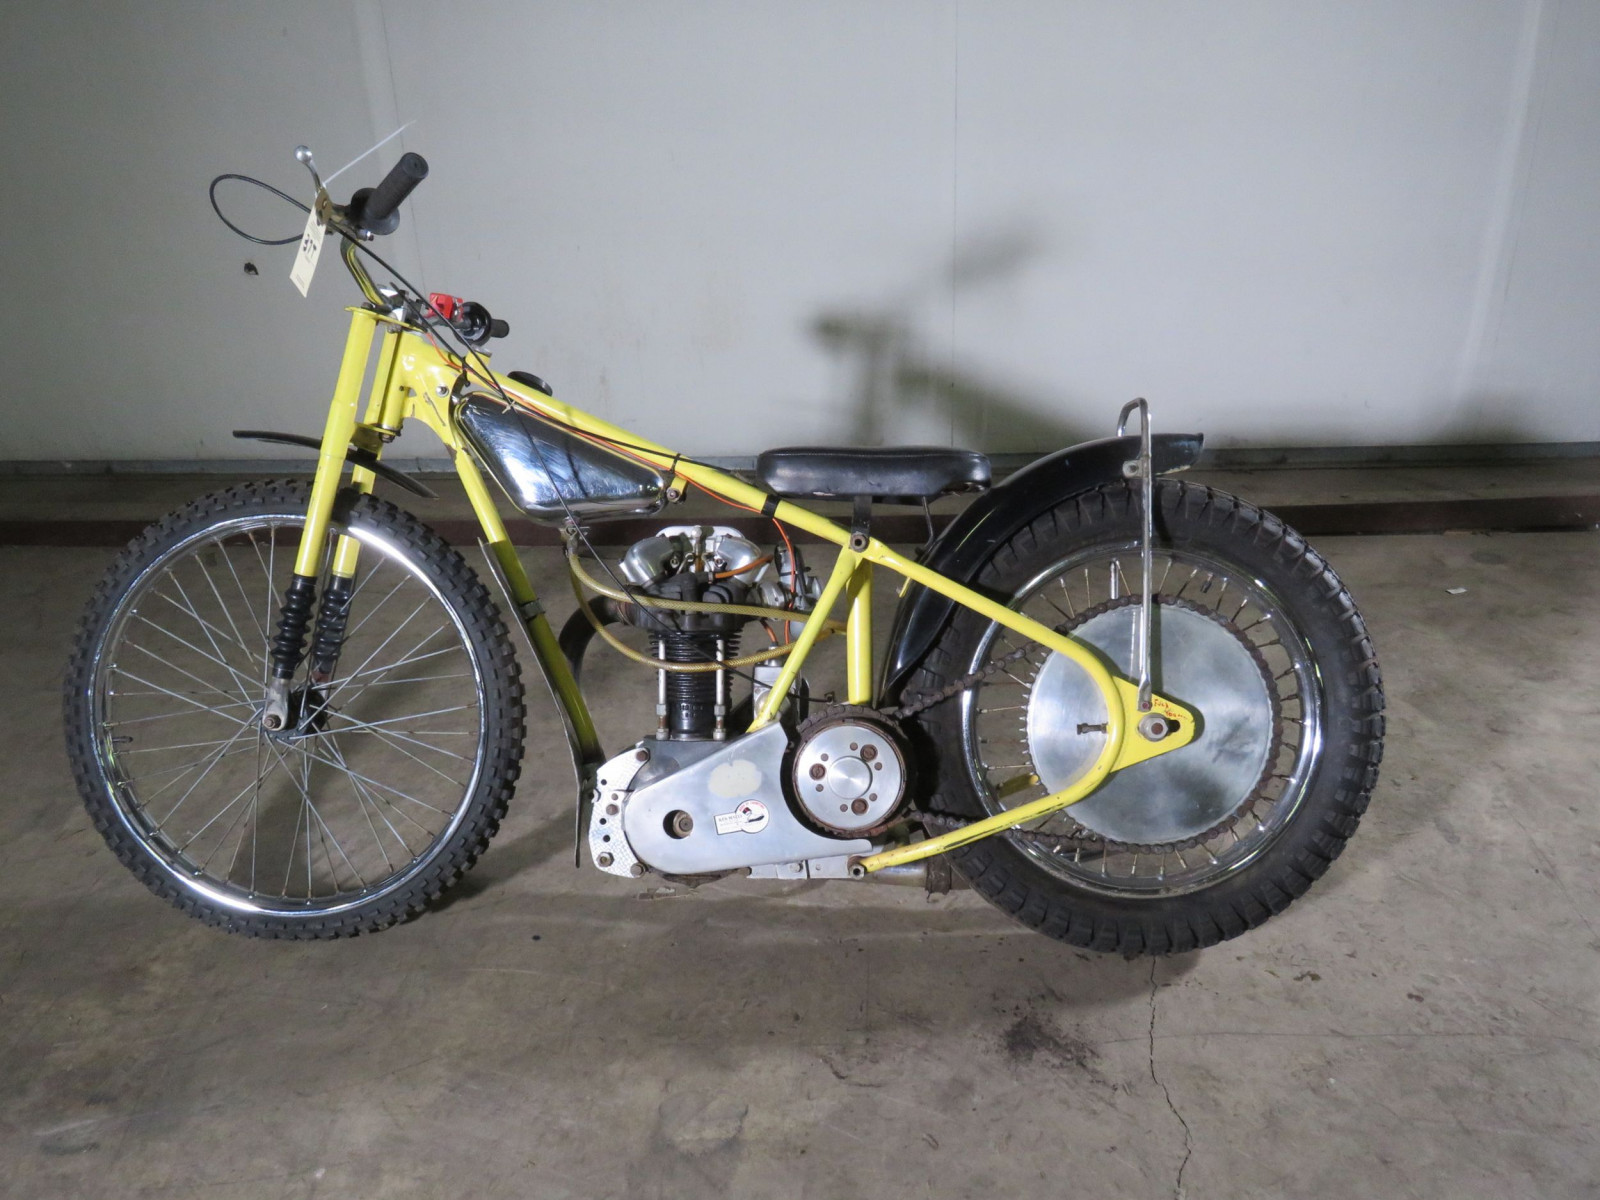 JAP Speedway Racer Motorcycle - Image 1